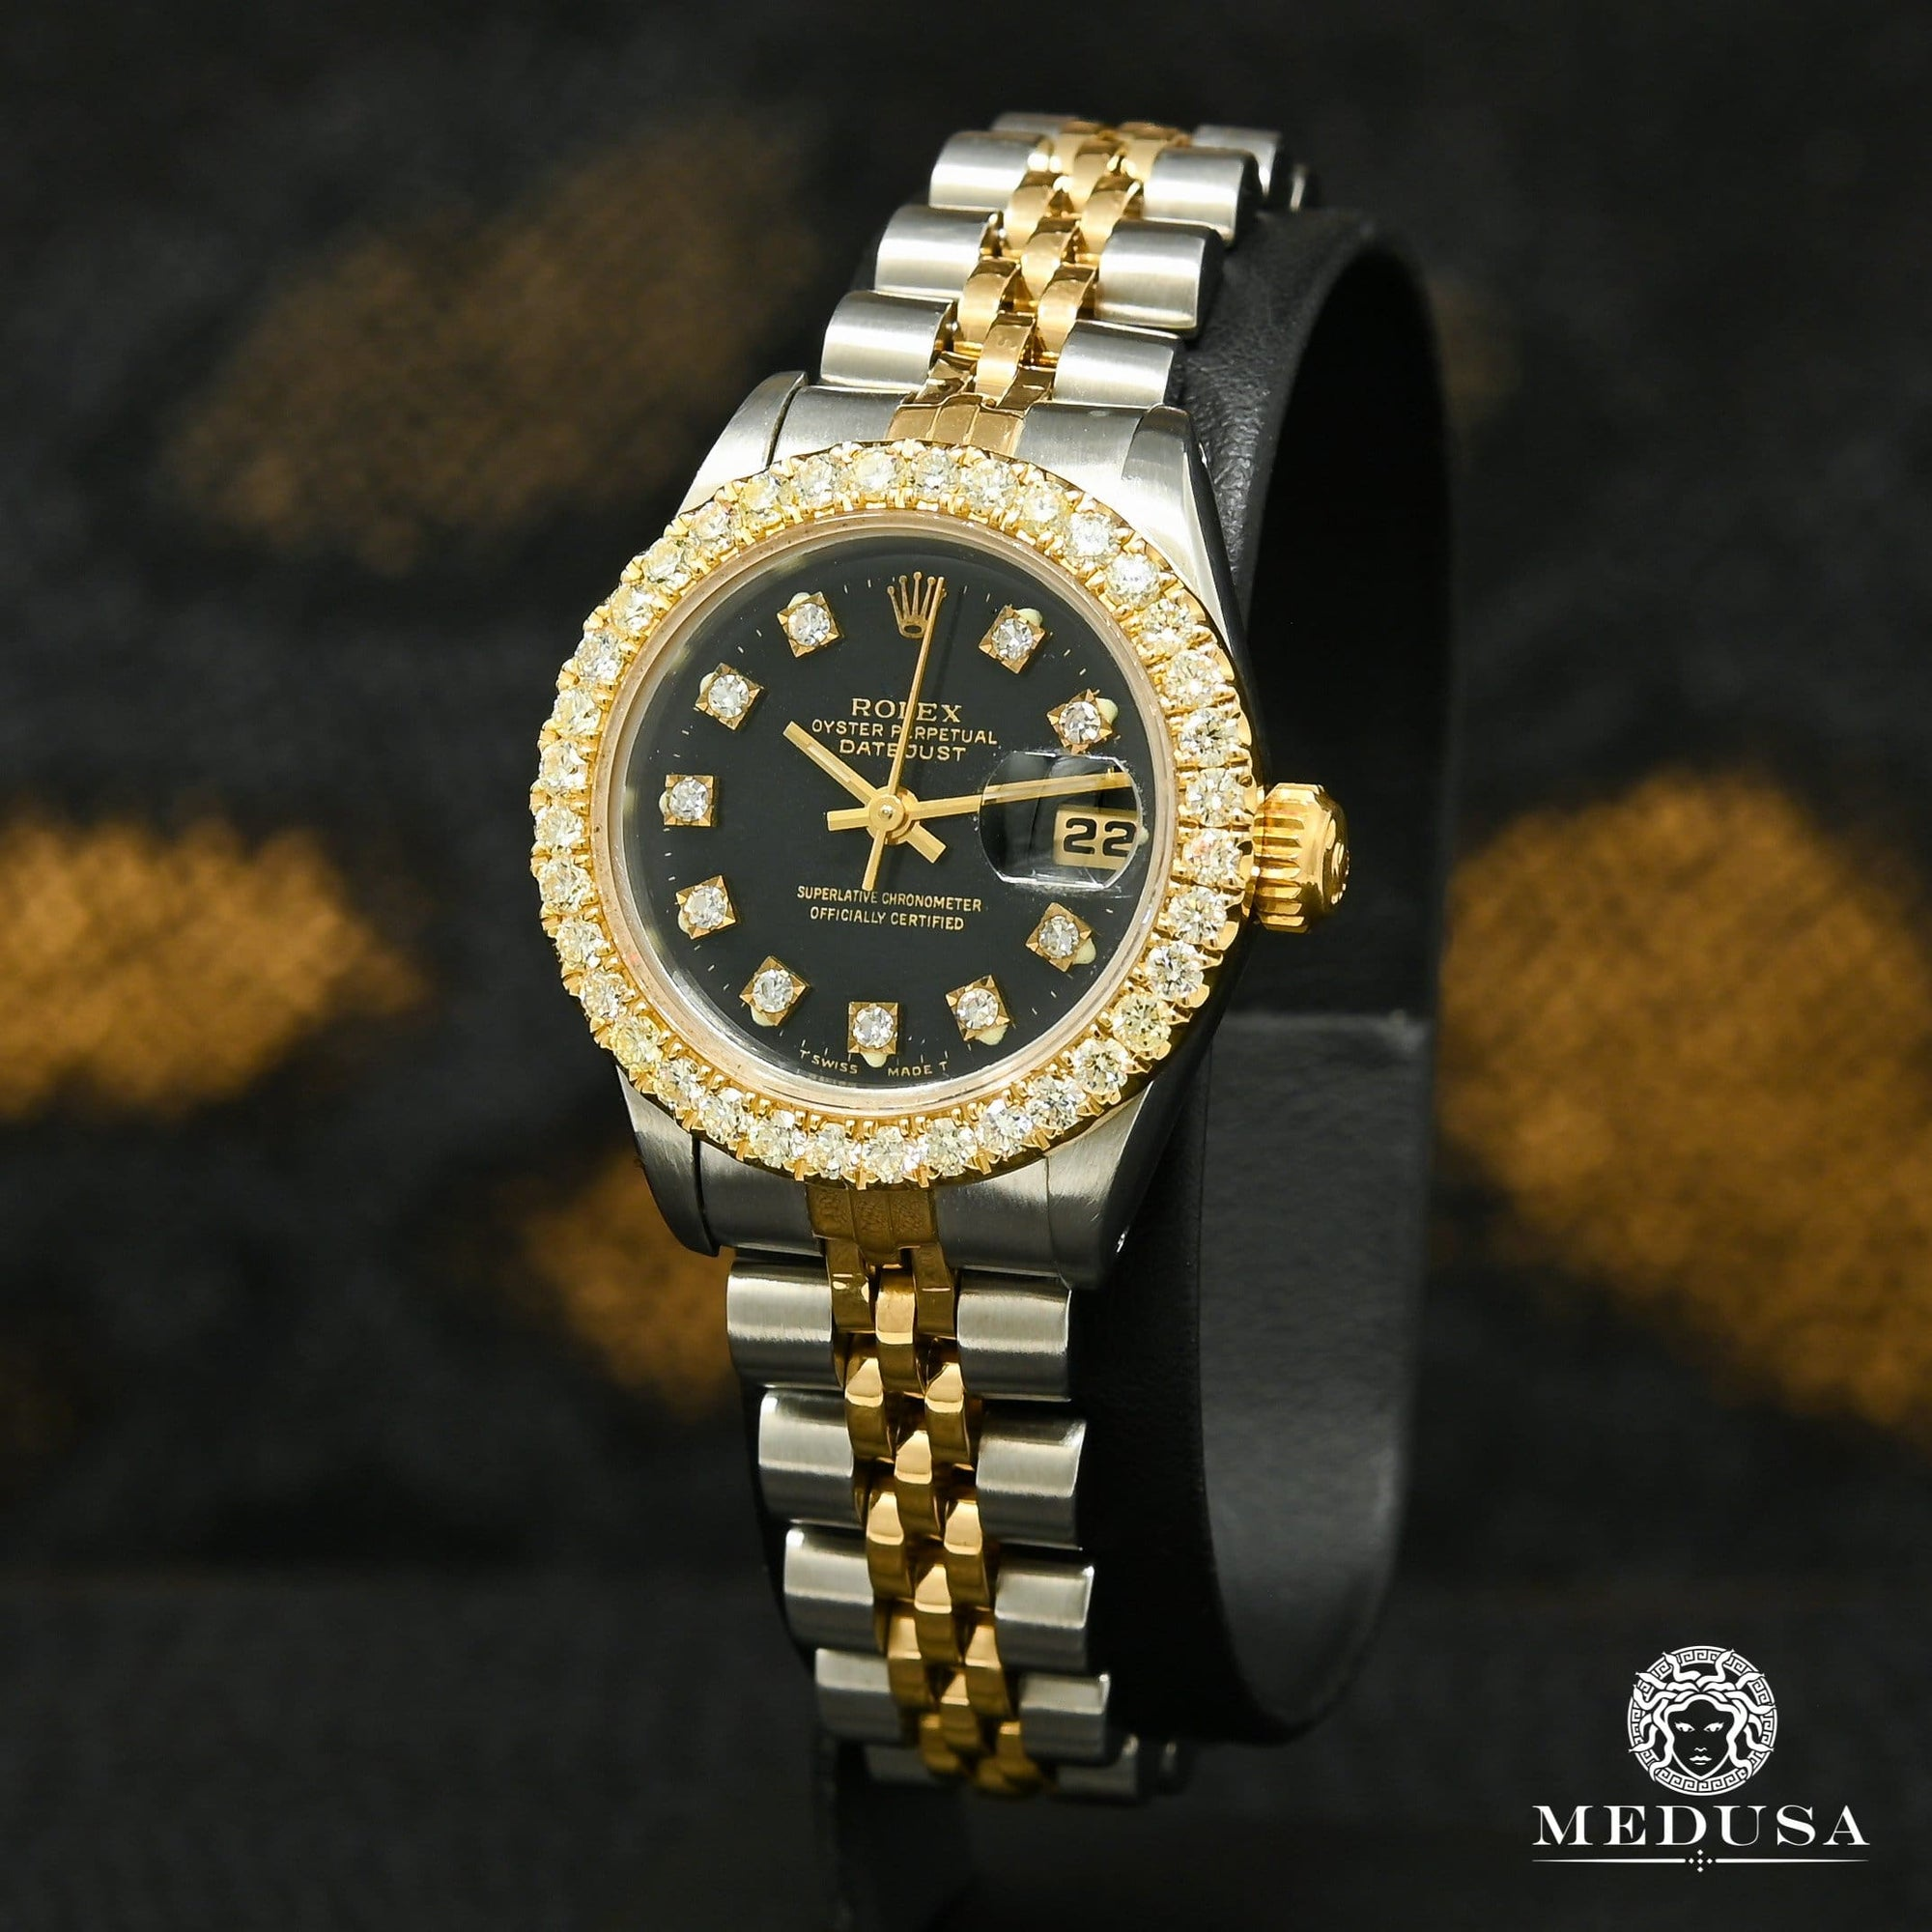 Rolex Datejust 26mm - Black